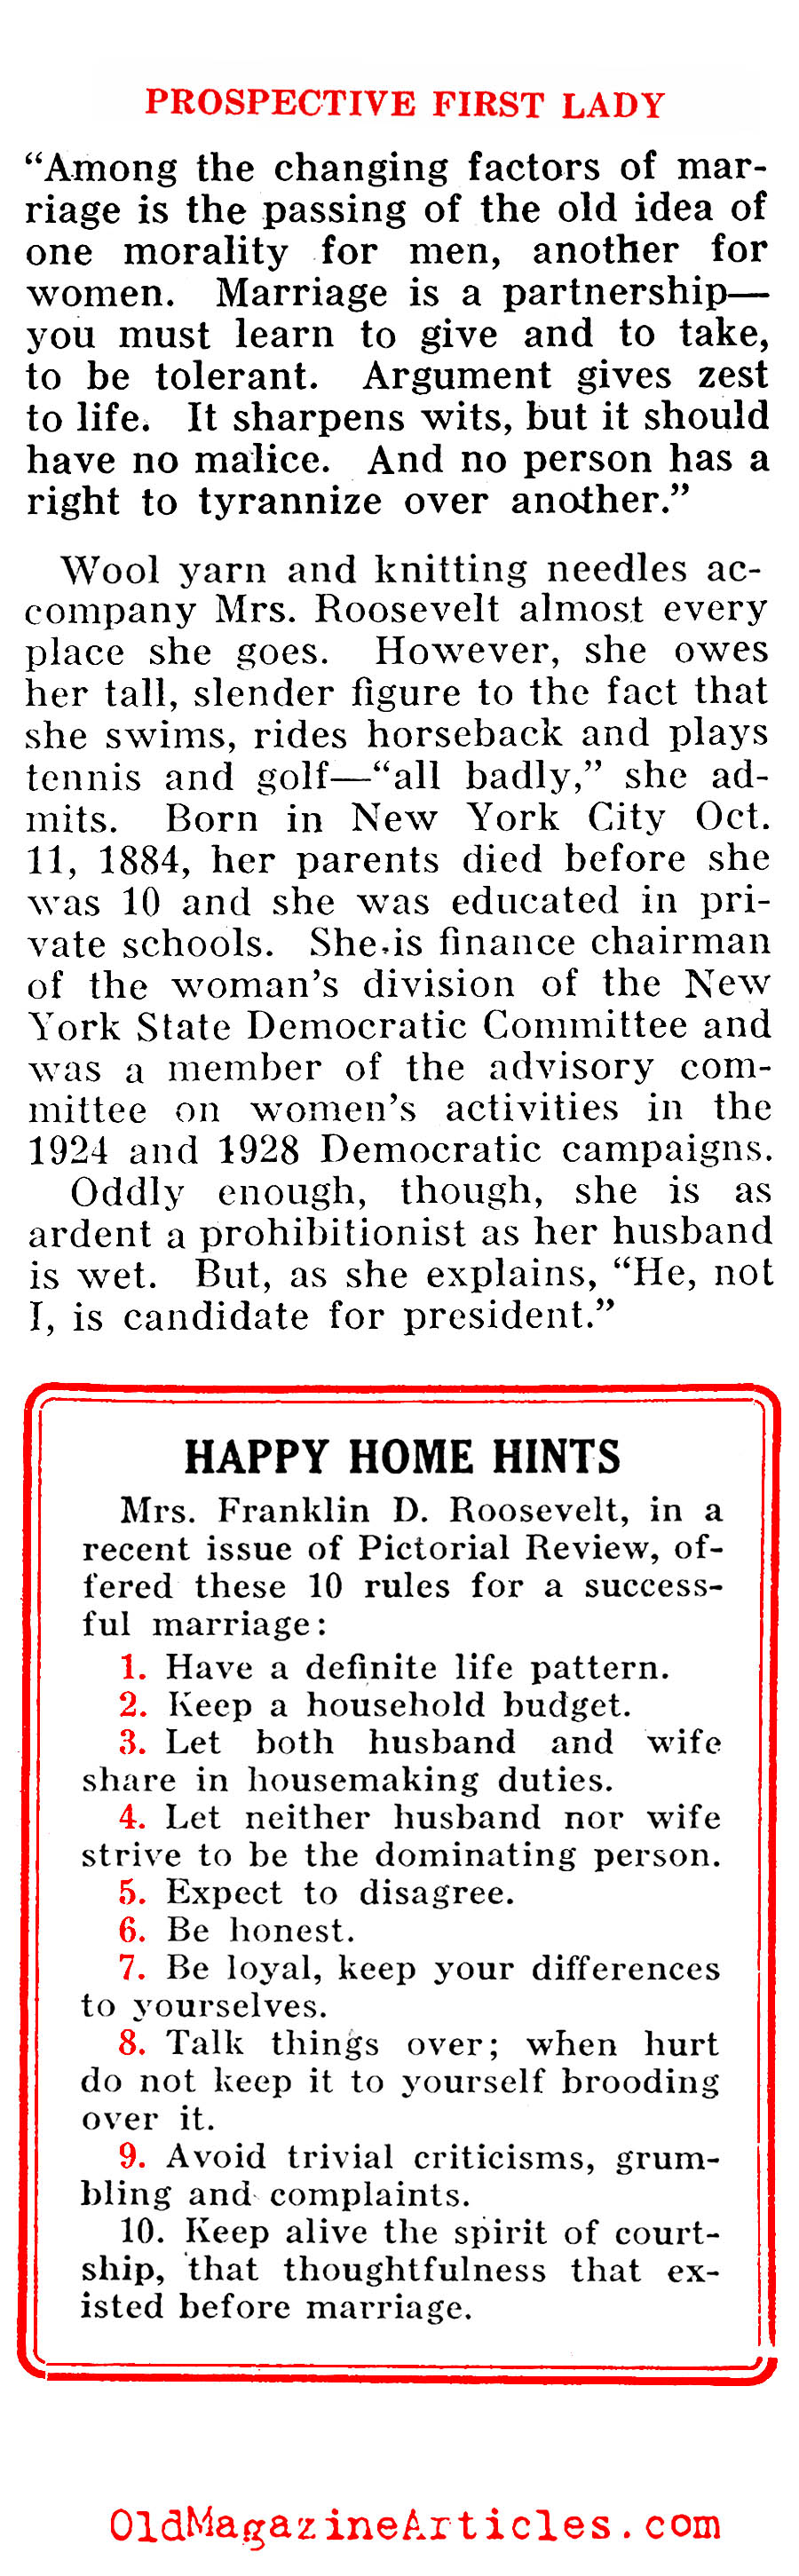 ''The Prospective First Lady'' (Pathfinder Magazine, 1932)